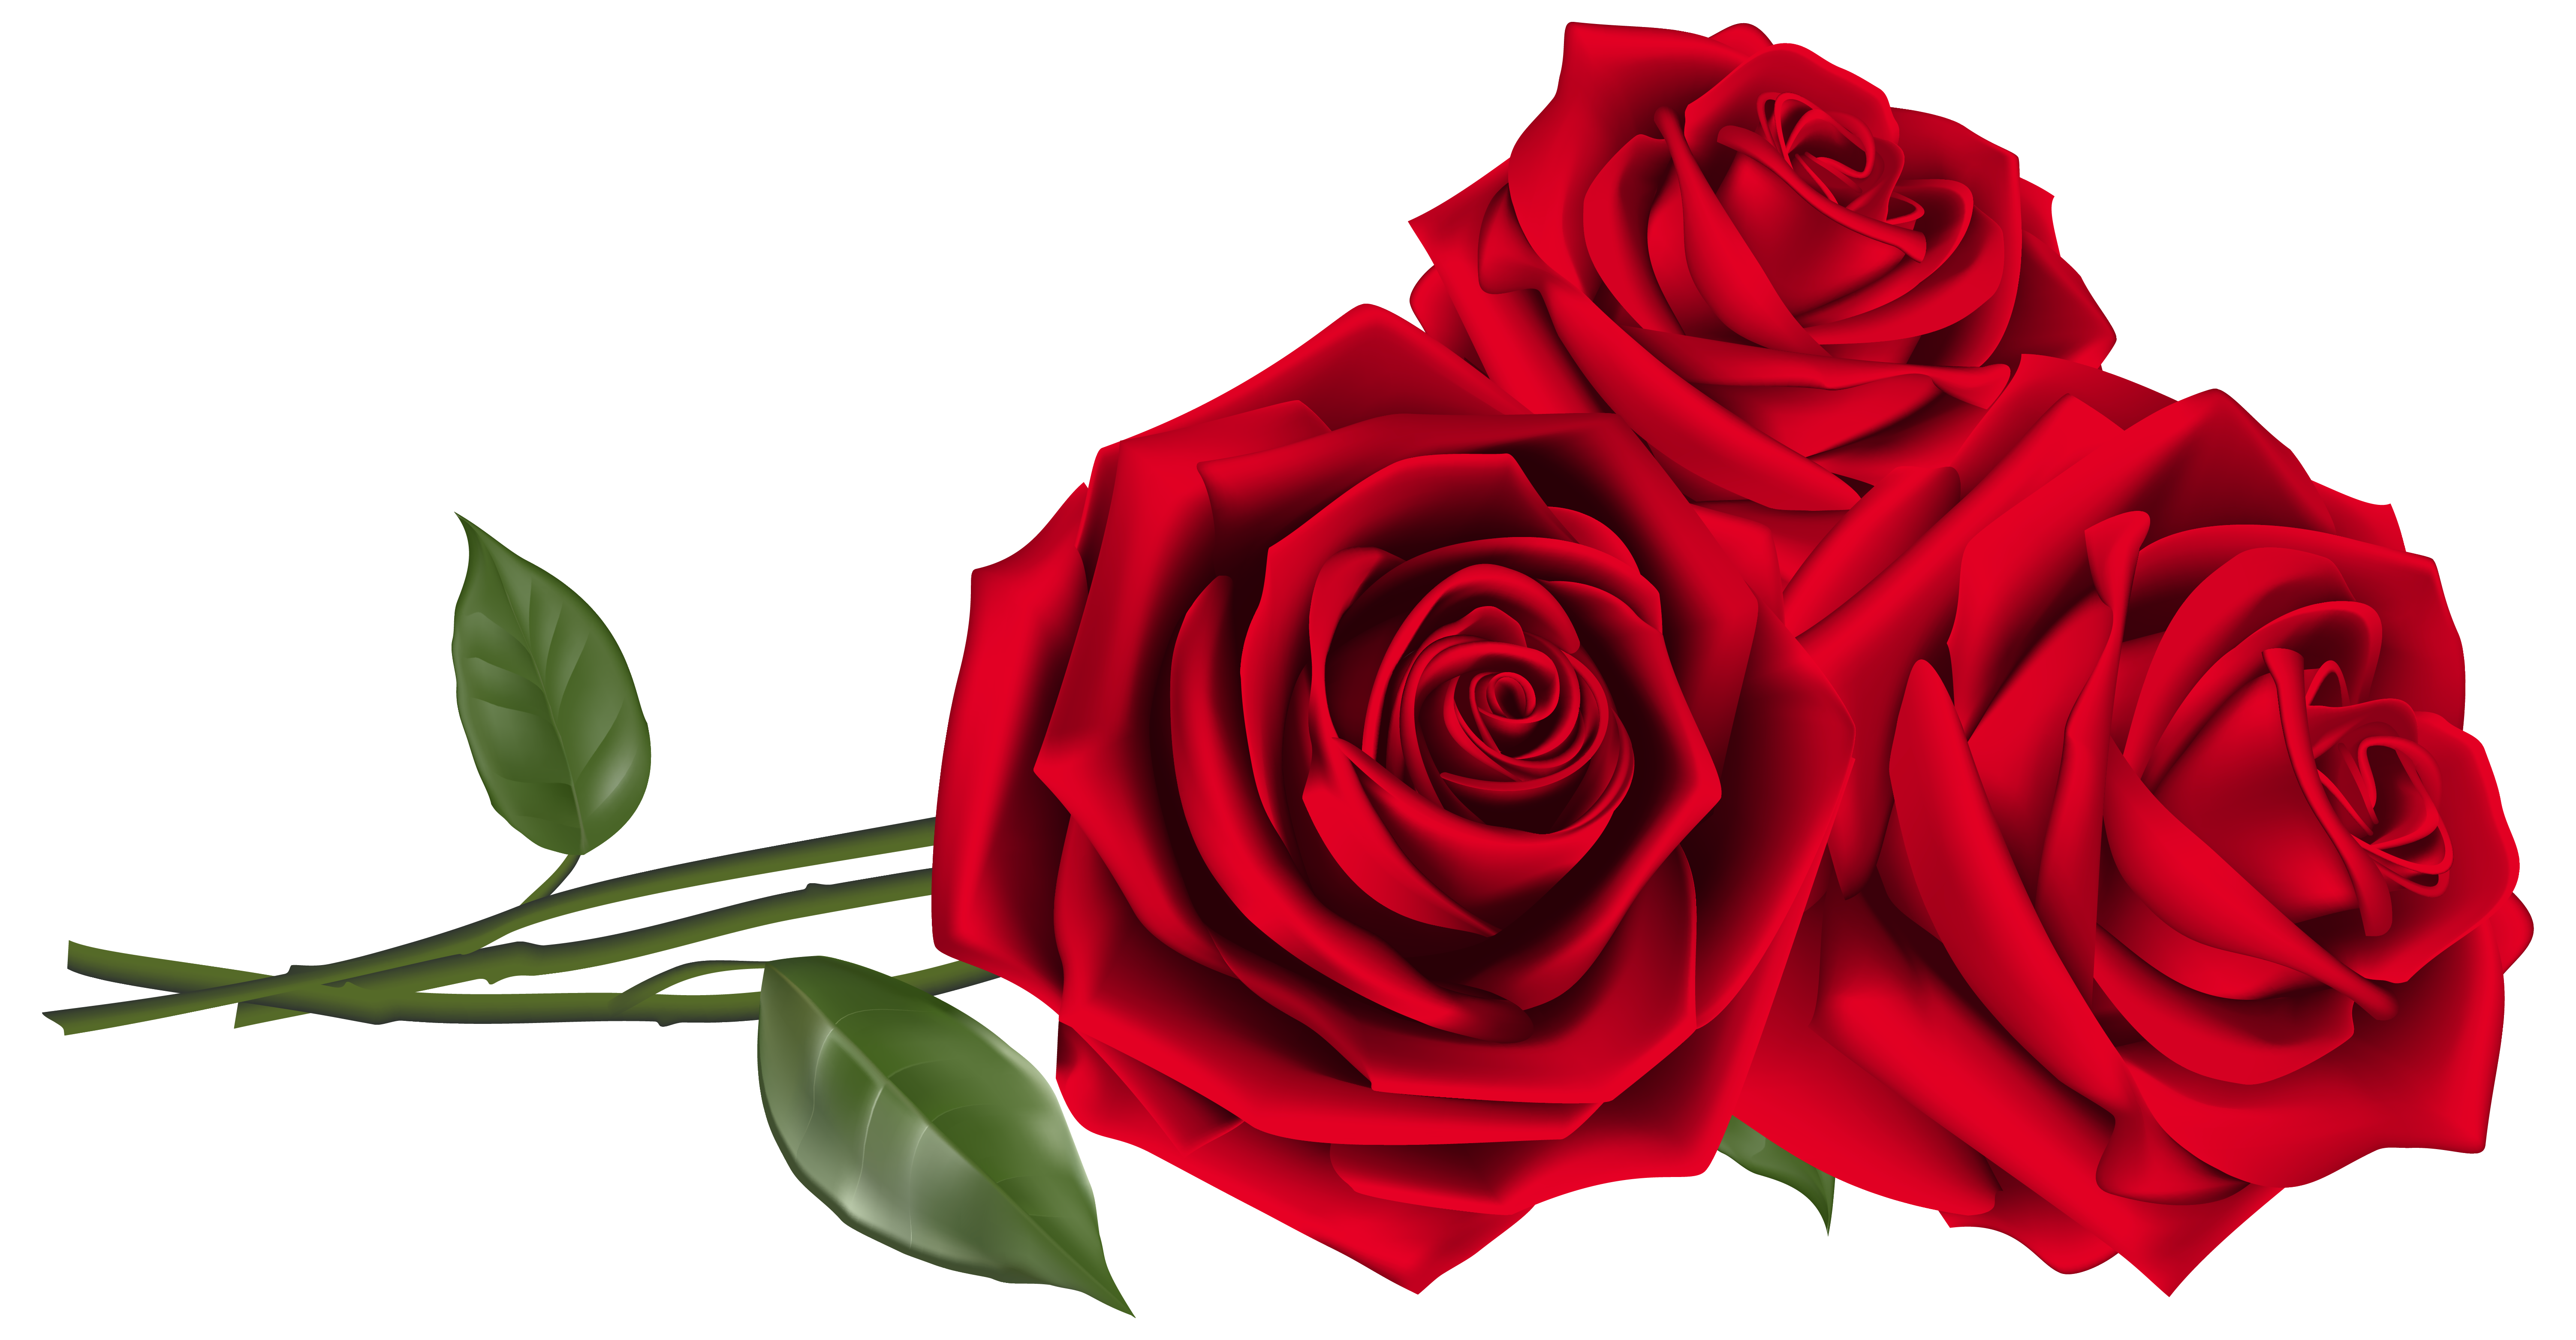 Three red clipart image. Roses png picture freeuse download